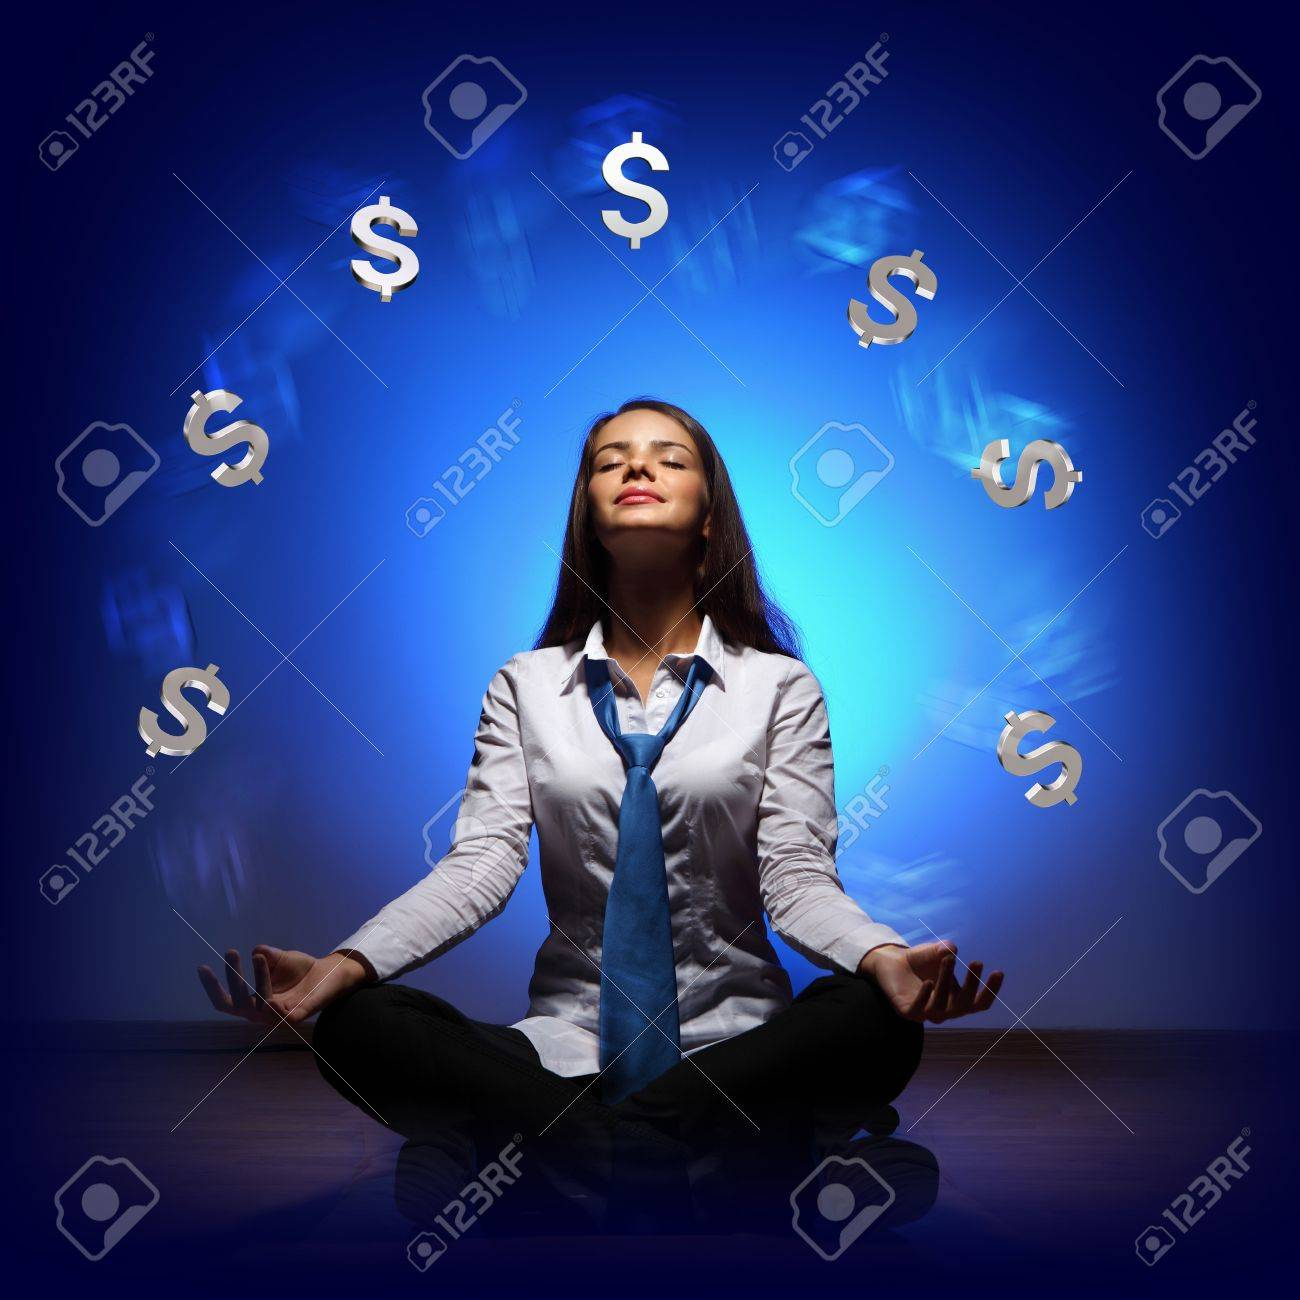 Businesswoman with financial symbols around her on the background Stock Photo - 16895729